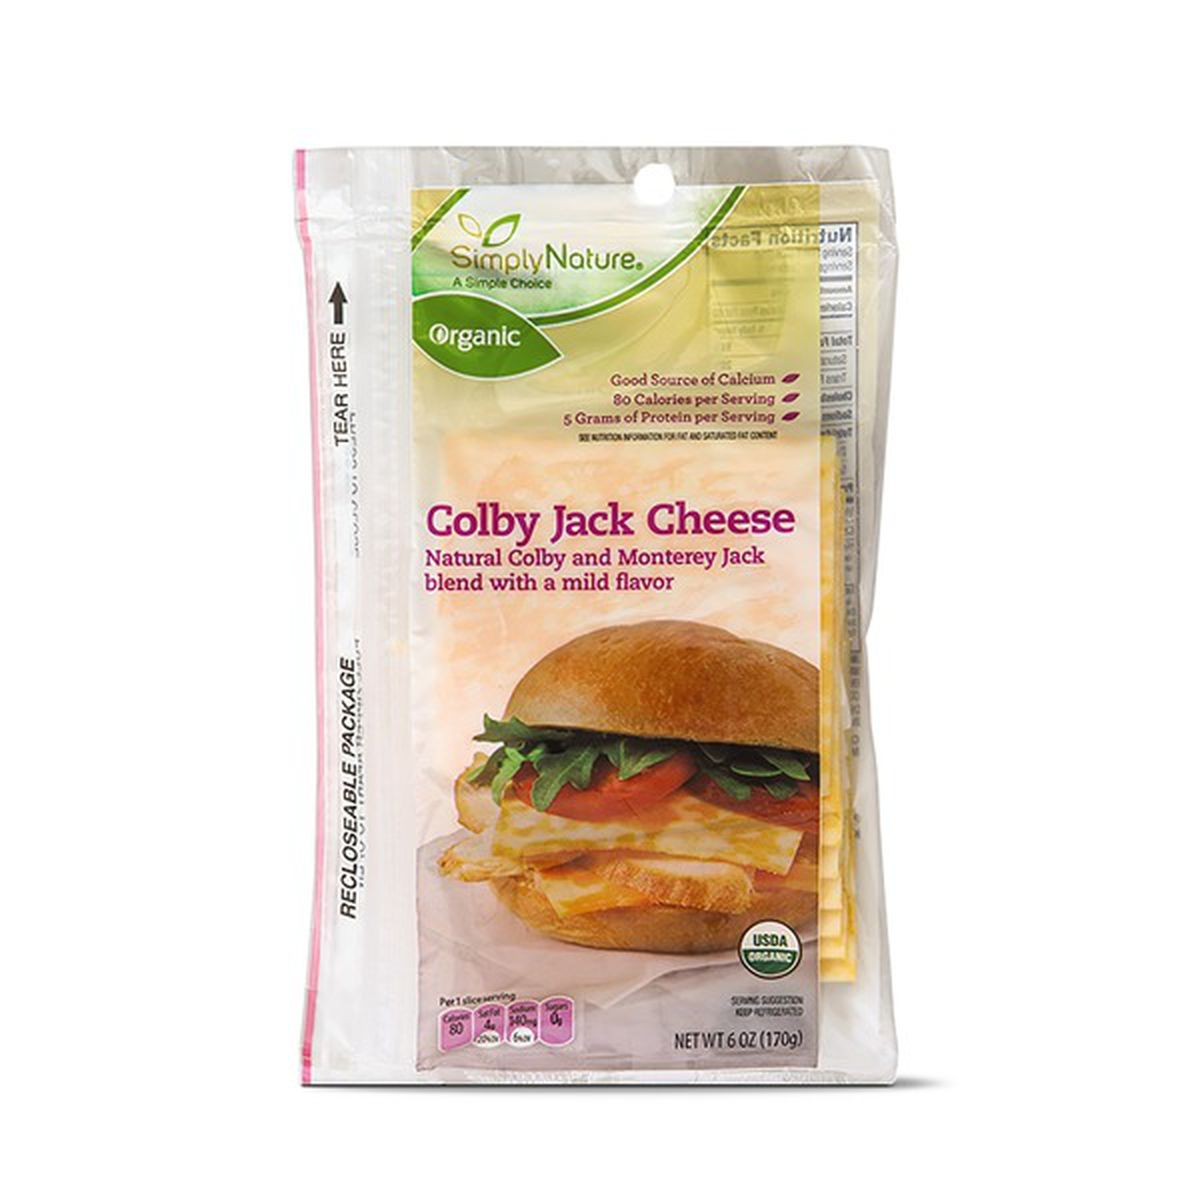 Deli Sliced Organic Colby Jack Cheese